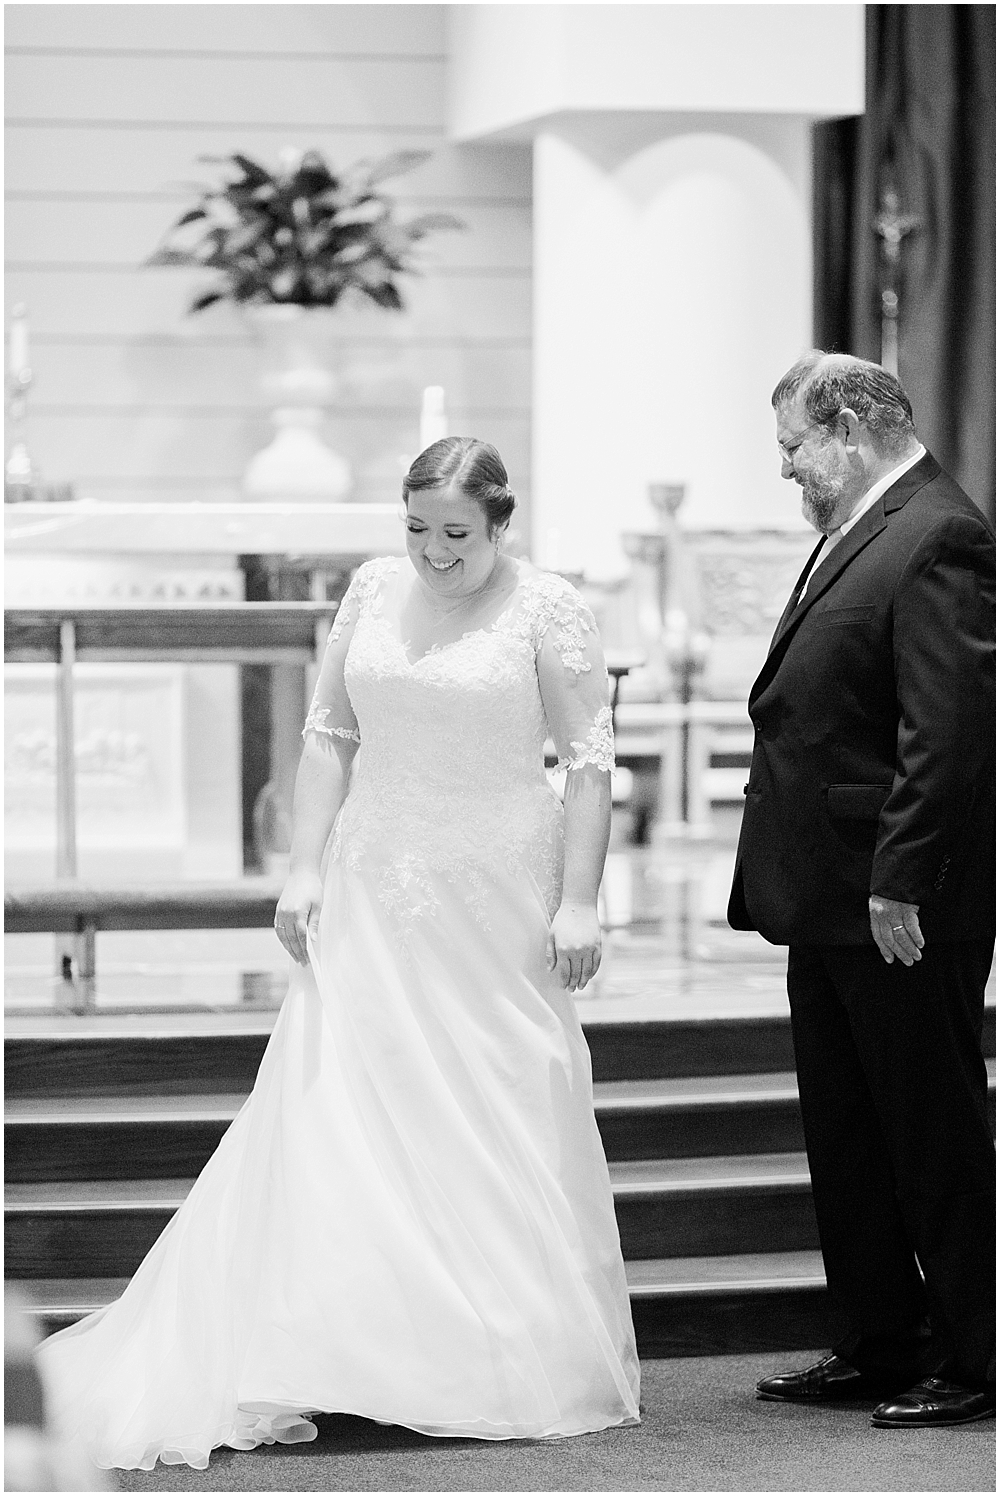 Ashton-Clark-Photography-Wedding-Portrait-Family-Photographer-Mobile-Alabama_0037.jpg